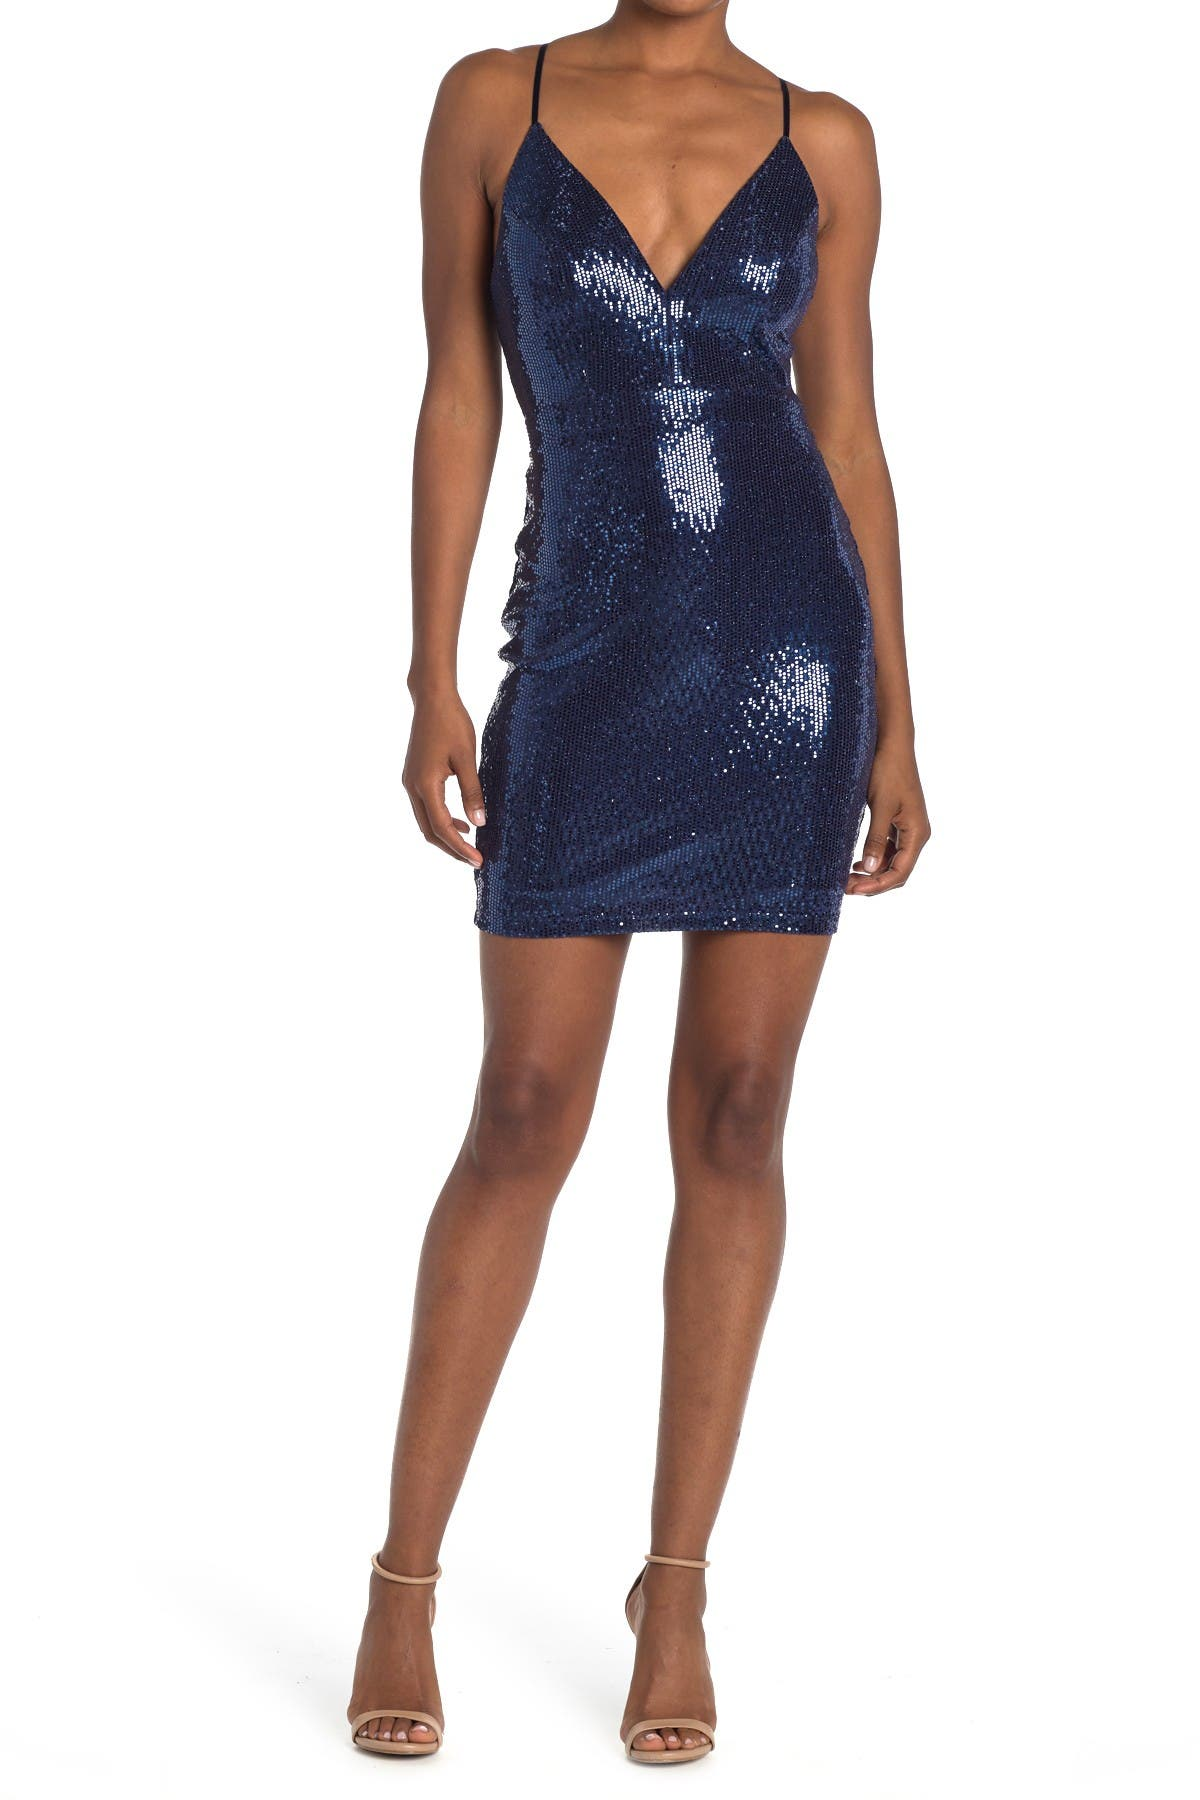 Love, Nickie Lew Lace Back Sequin Bodycon Mini Dress